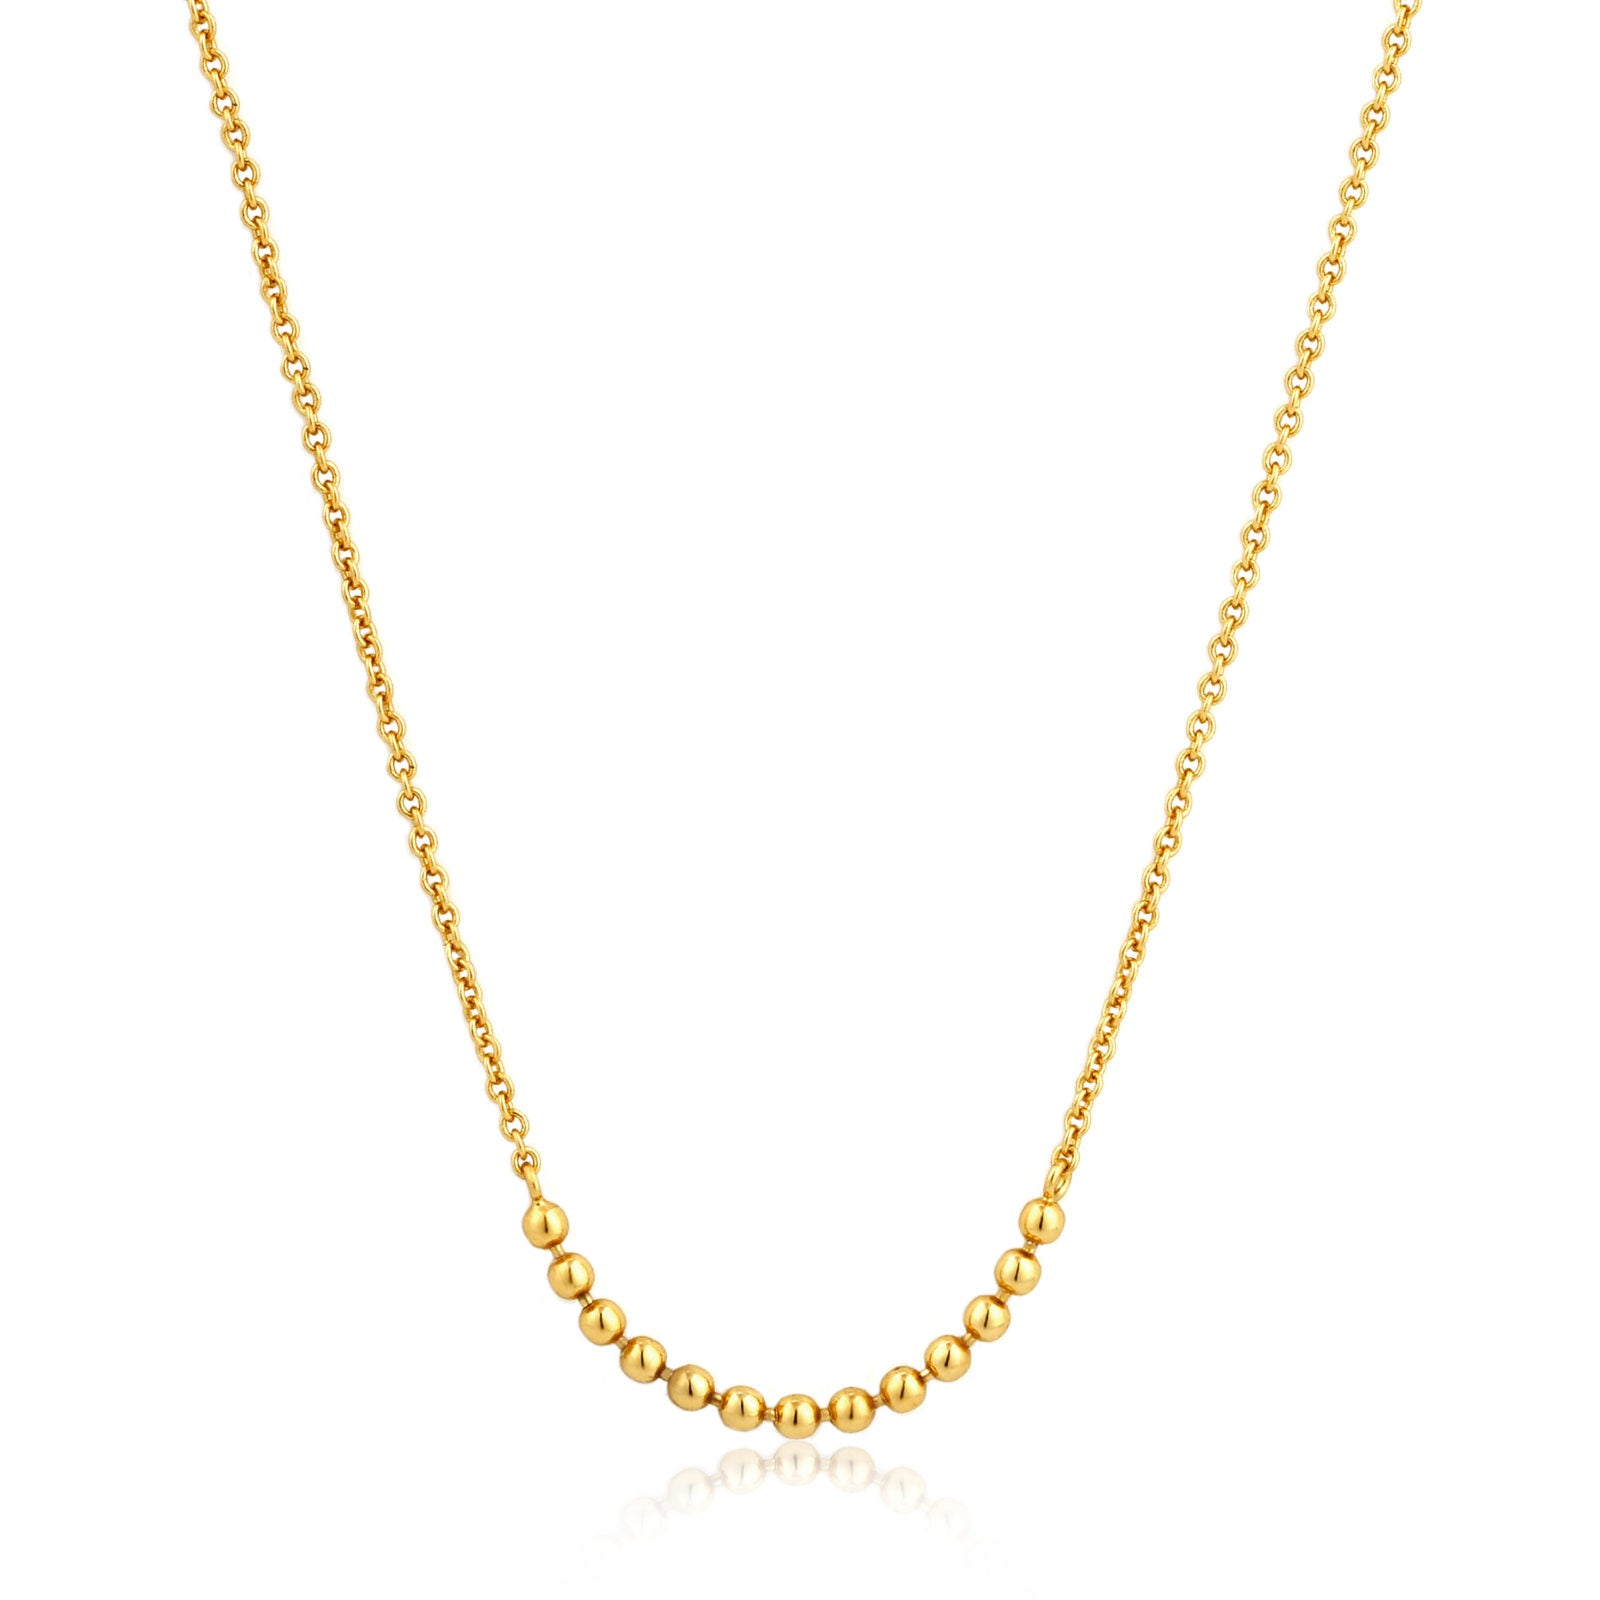 STERLING SILVER YELLOW GOLD PLATED MODERN MULTIPLE BALLS NECKLACE